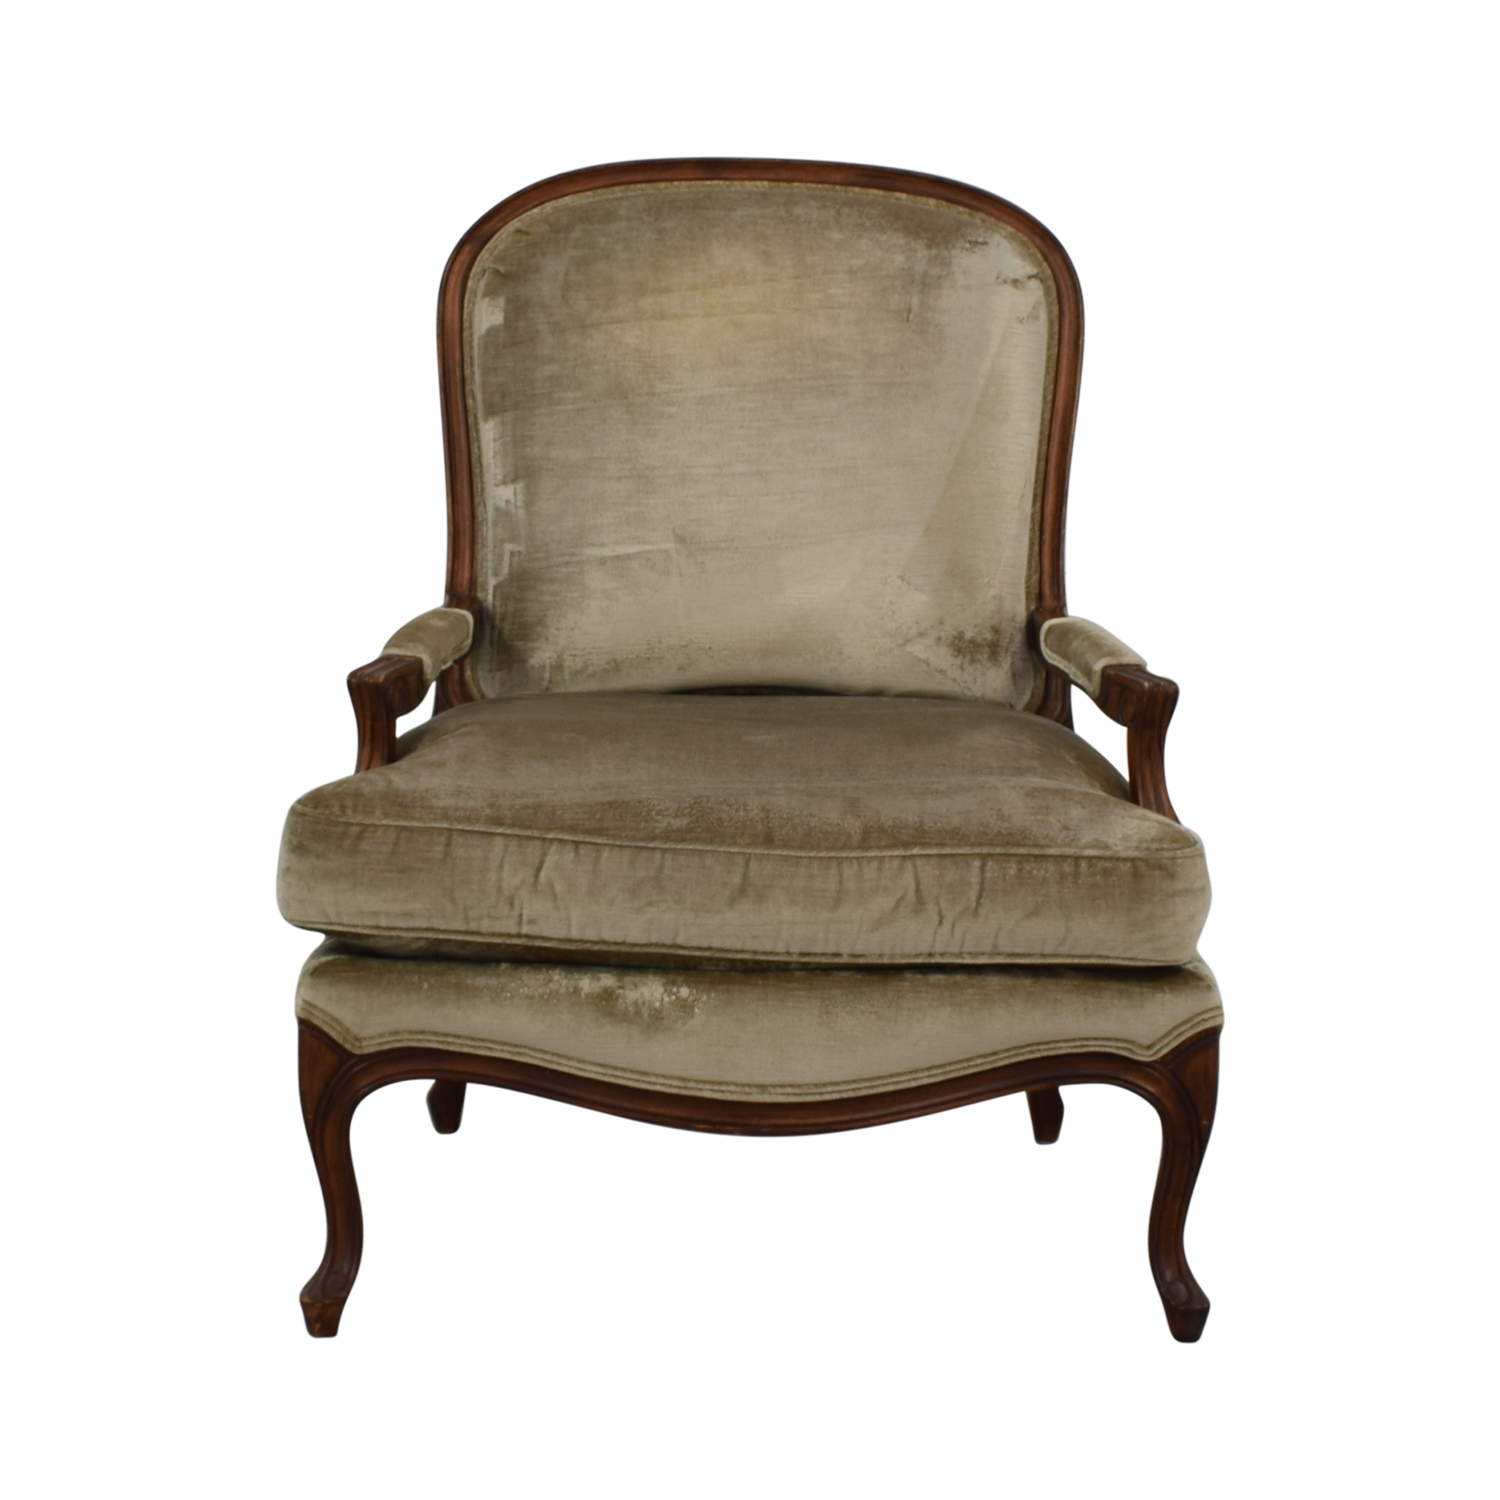 Drexel Heritage Drexel Heritage Country French Accent Chair pa